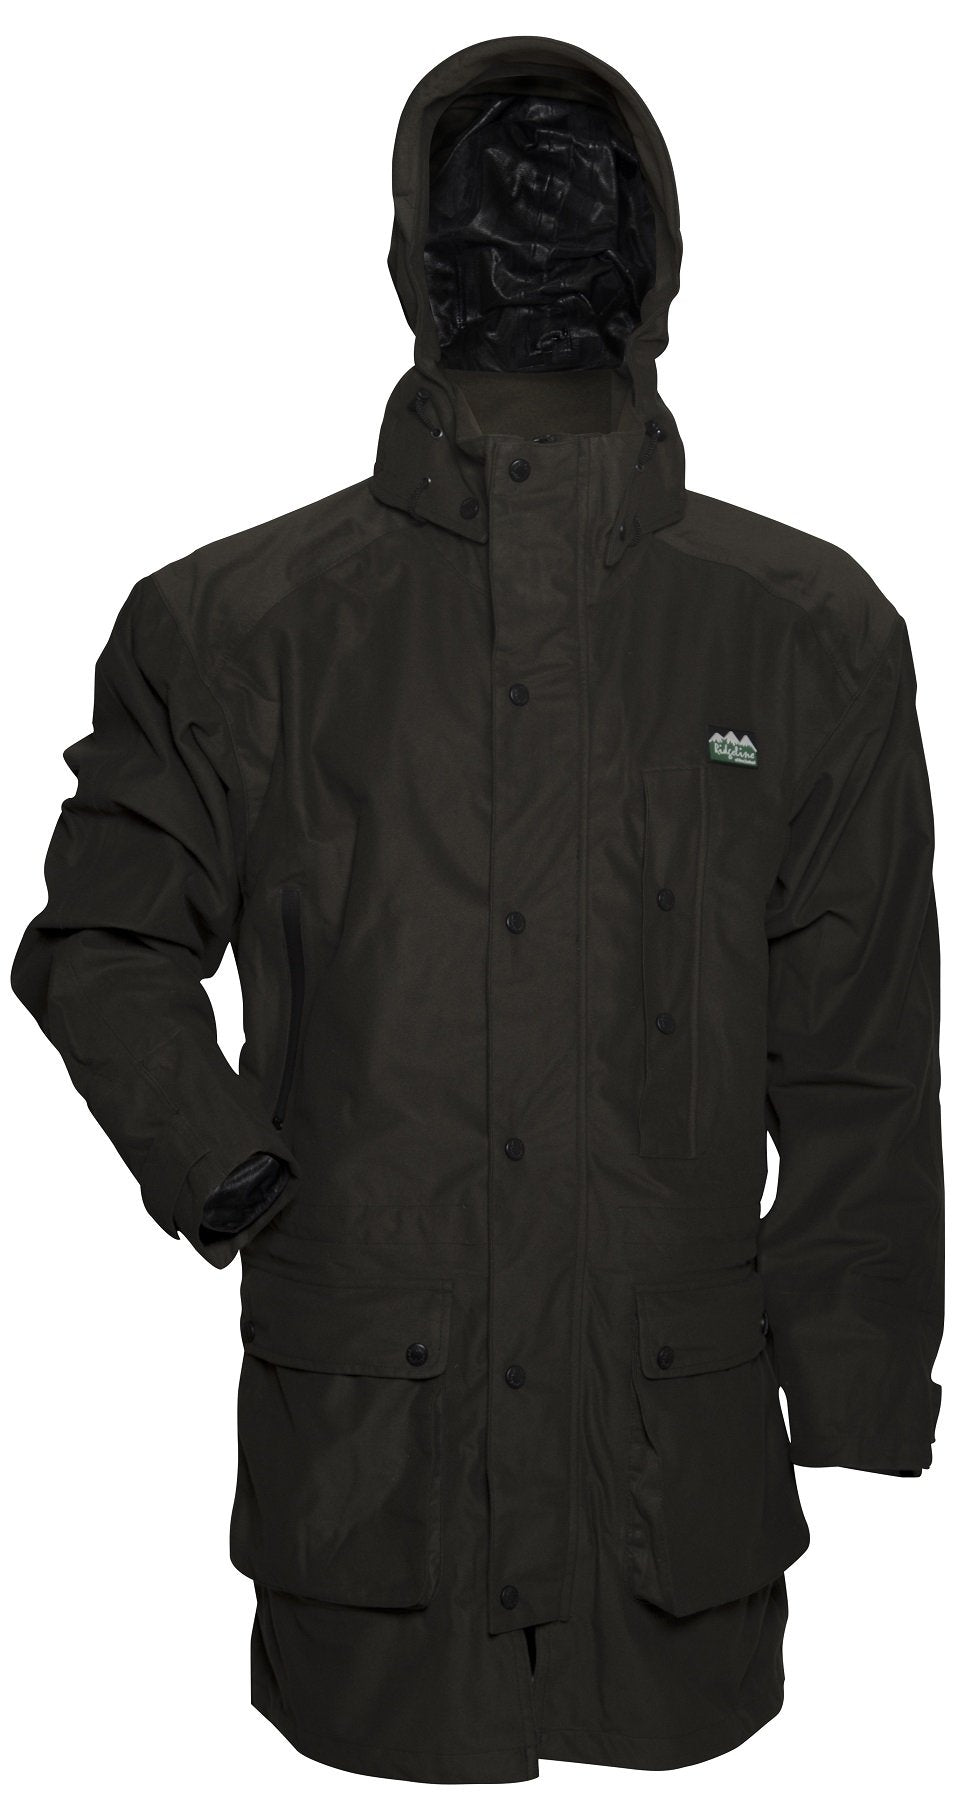 RIDGELINE - RECOIL JACKET - SKU: RLCRJO4 - Size: XL, 200-500, Amazon, Apparel, coats-jackets, ebay, ridgeline, size-xl